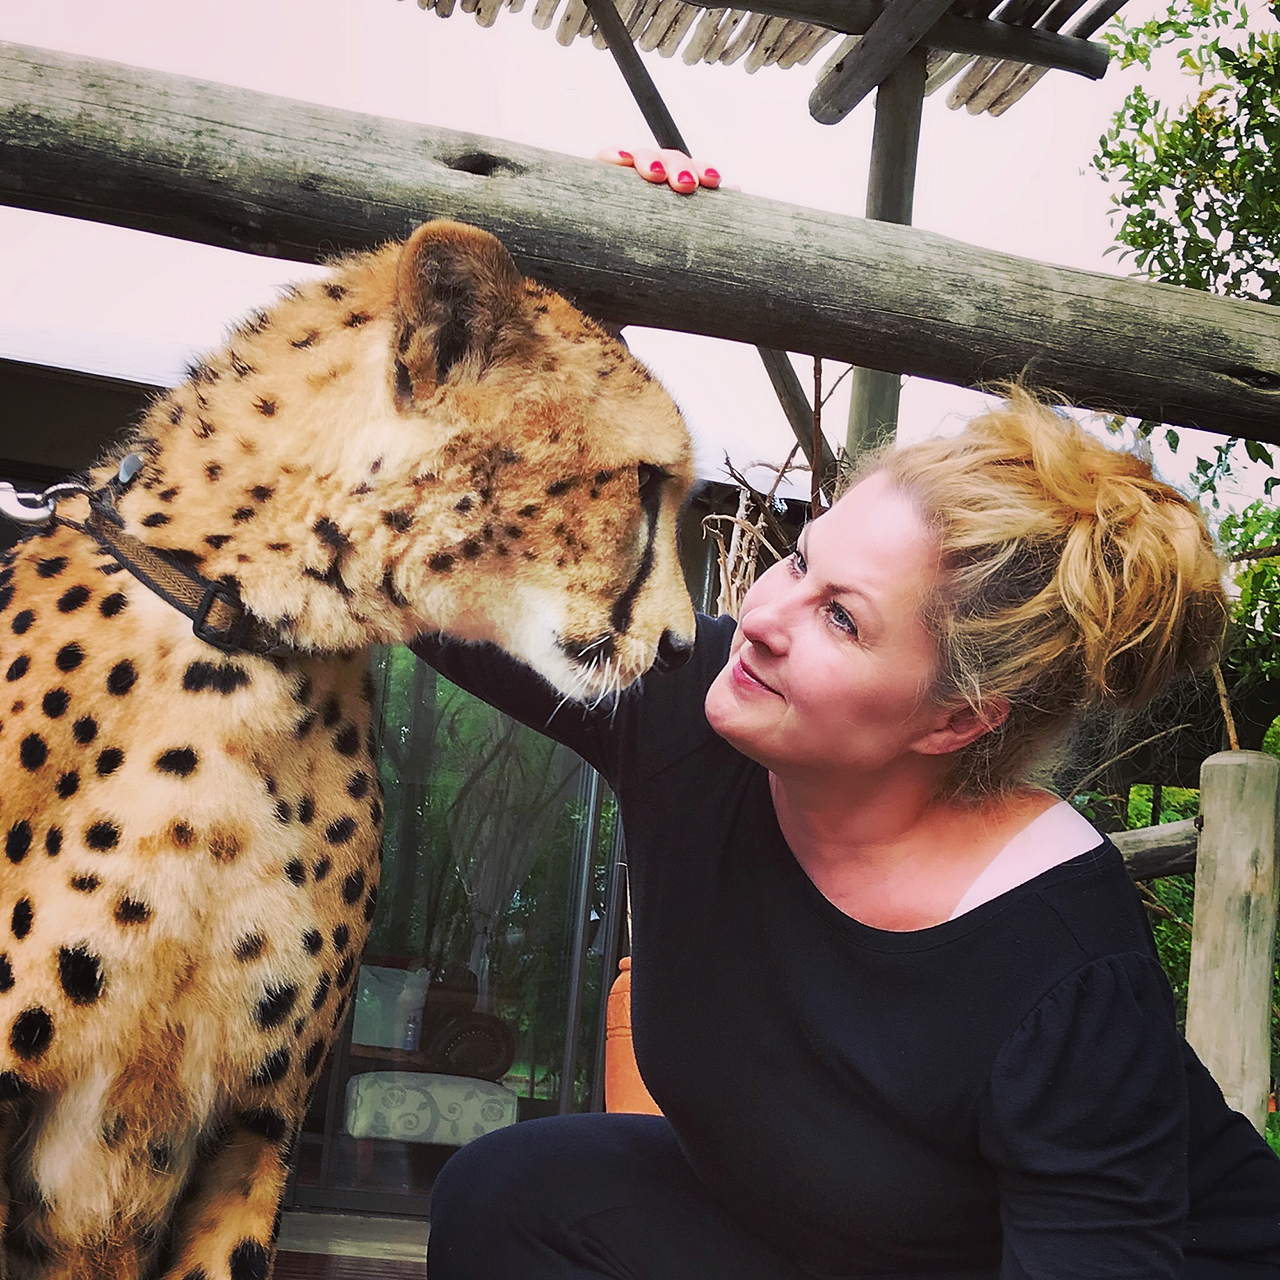 The Cheetah; an Unexpected Moment